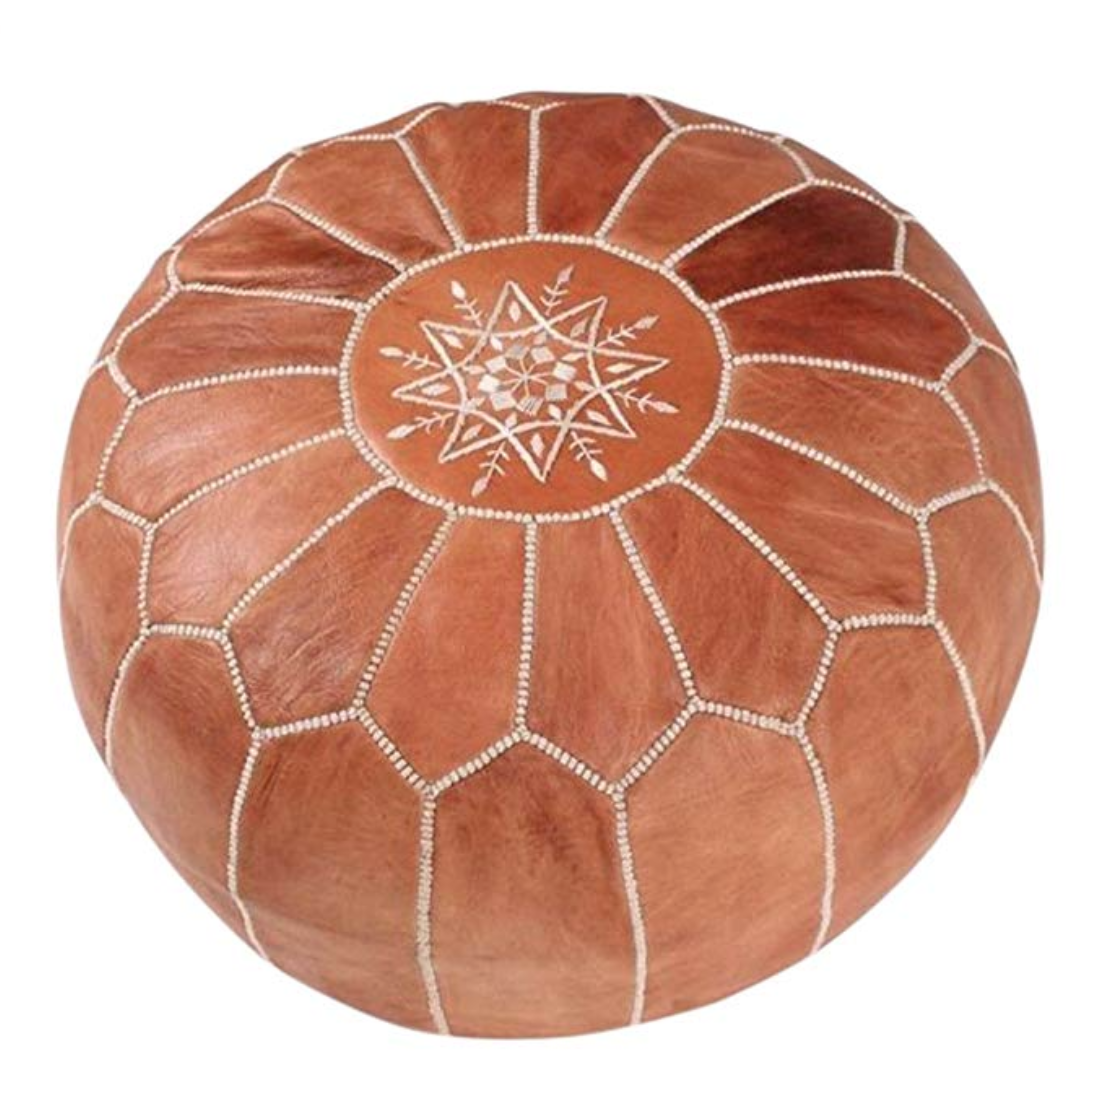 Moroccan House Leather Pouf